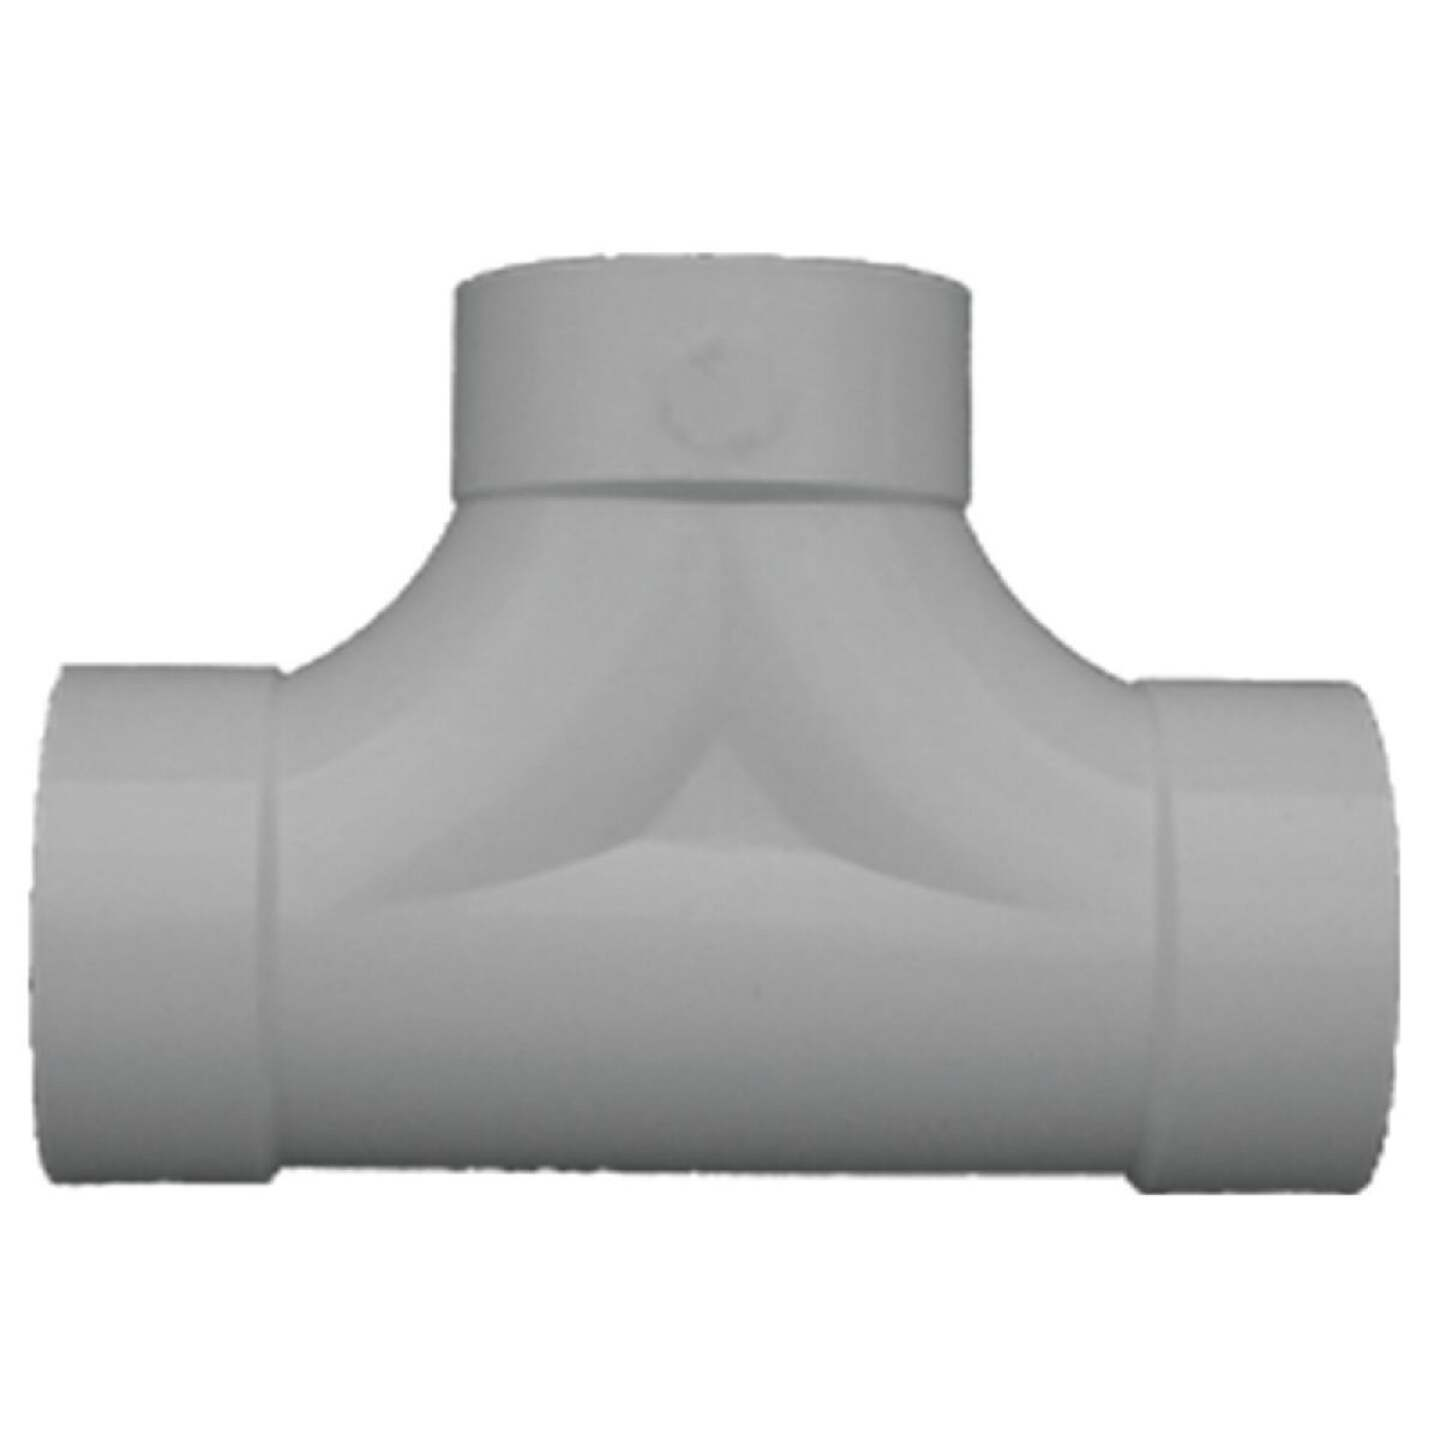 IPEX 4 In. PVC Sewer and Drain Two Way Tee Image 1